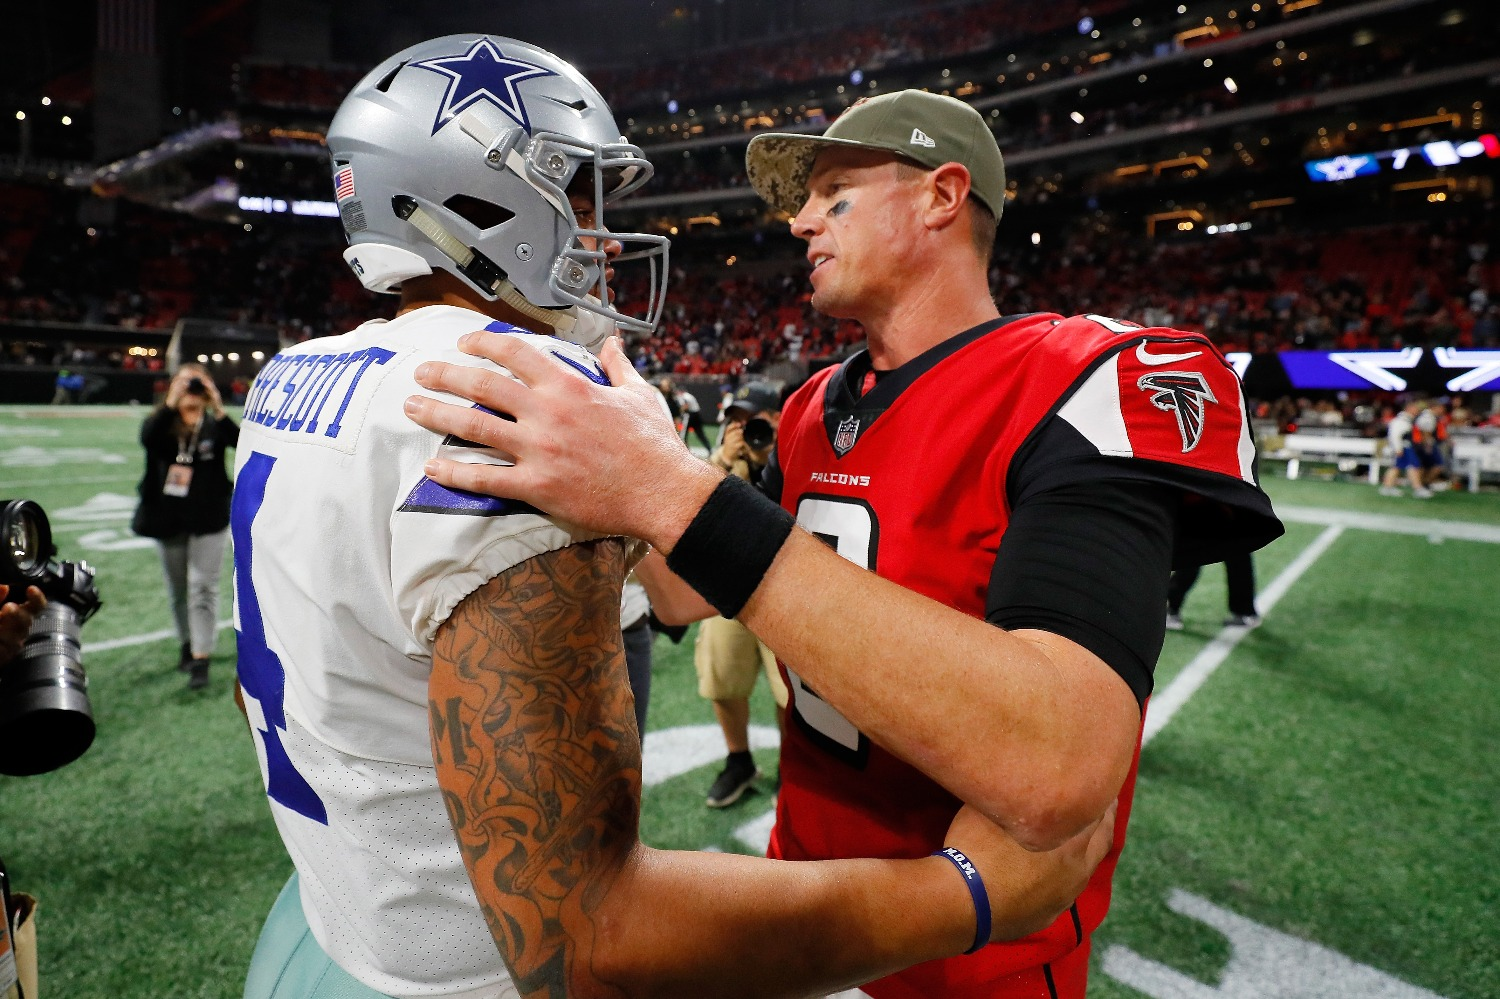 The Atlanta Falcons sent a powerful political message to the Dallas Cowboys just days before the two NFC teams square off.